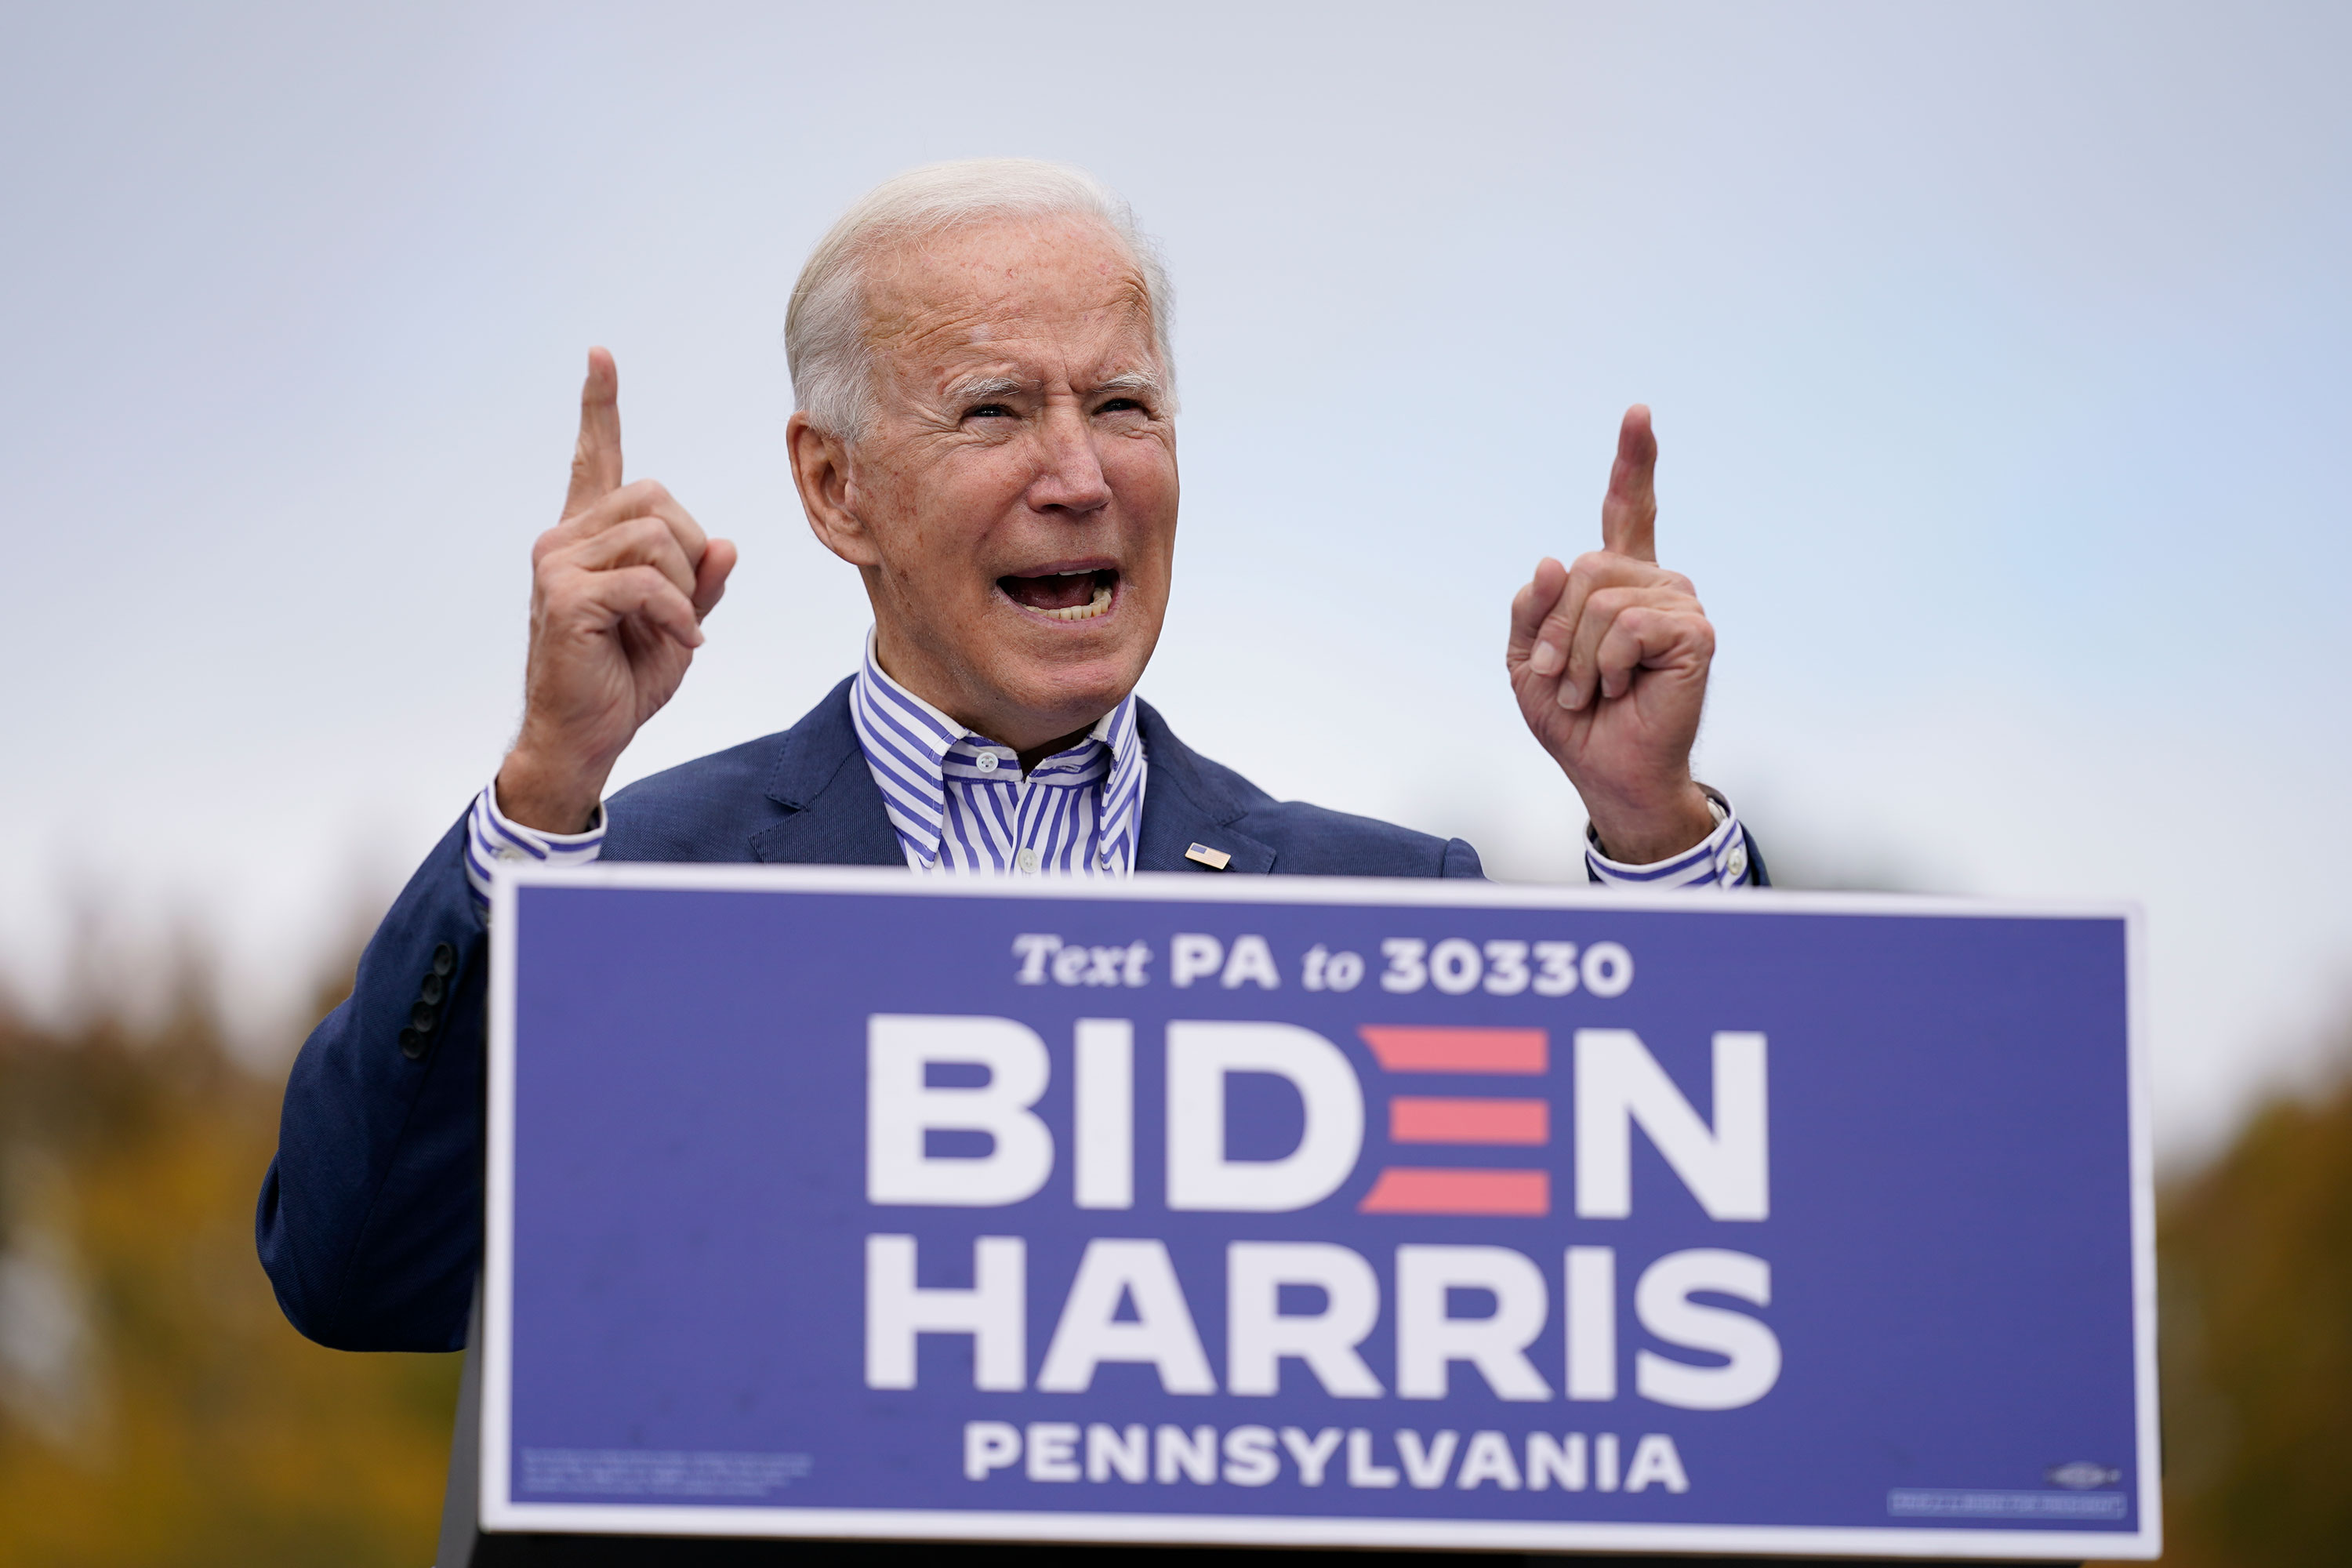 Us Election 2020 Latest News On Biden Trump And Voting